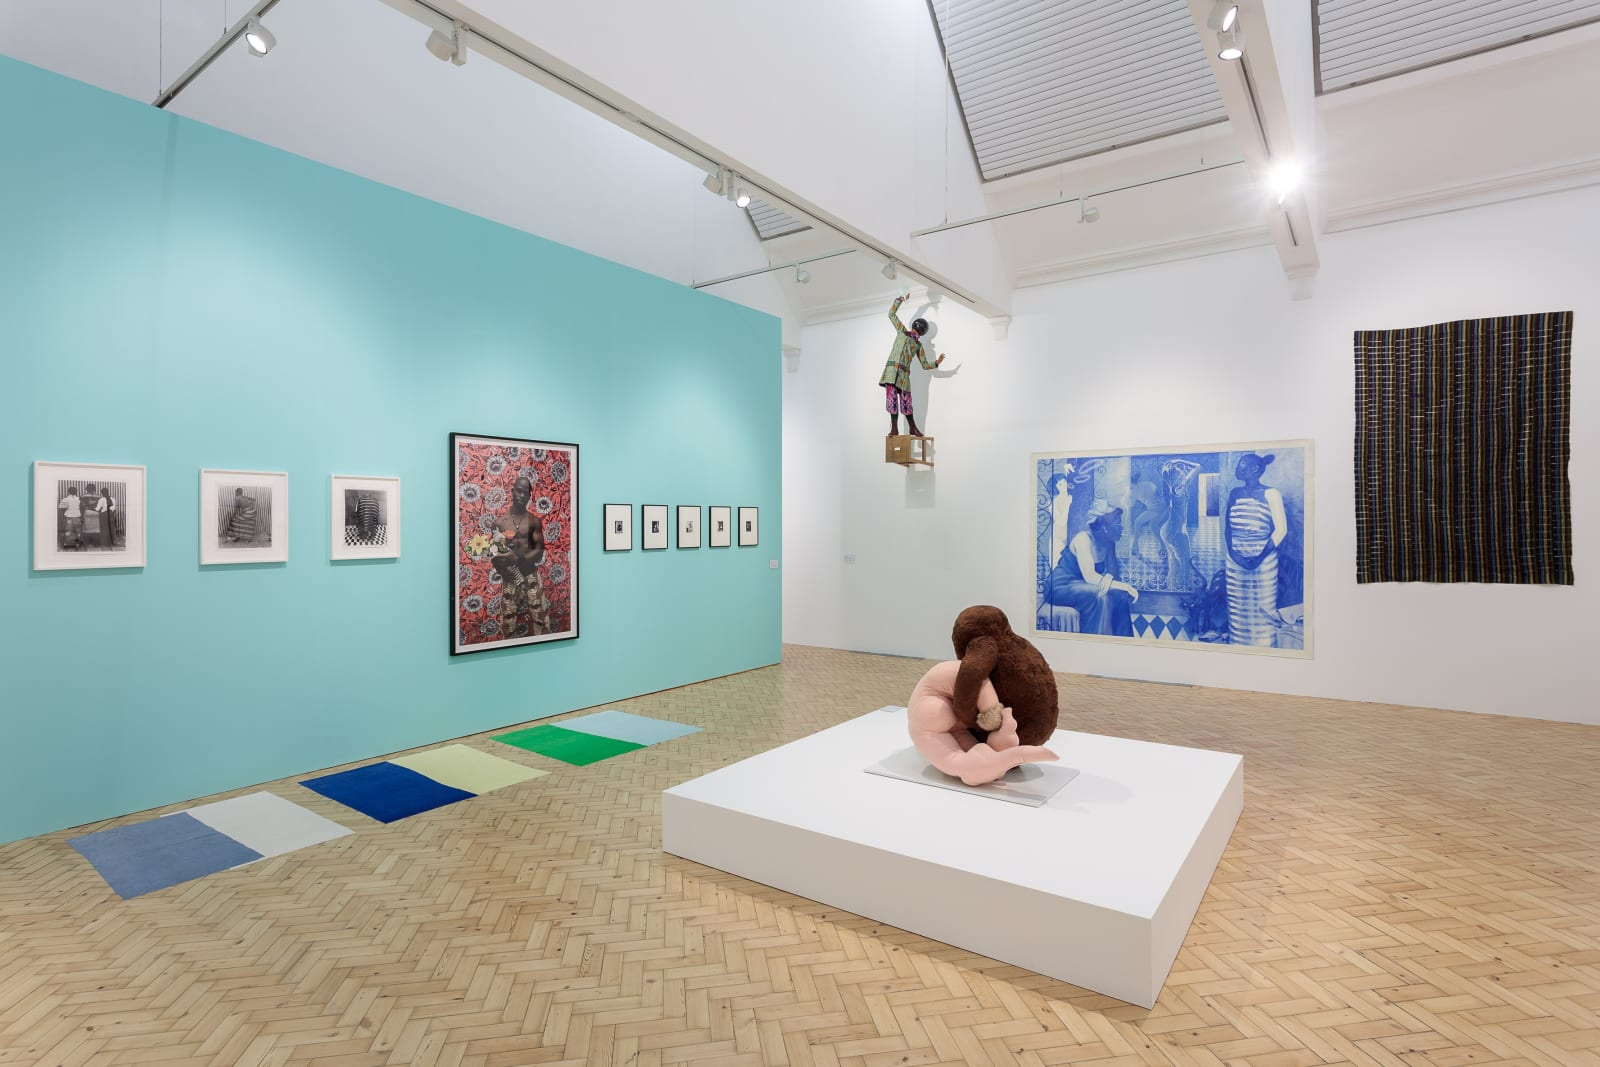 Installation view of Making & Unmaking, an exhibition curated by Duro Olowu at Camden Arts Centre 2016. Photo: Mark Blower.